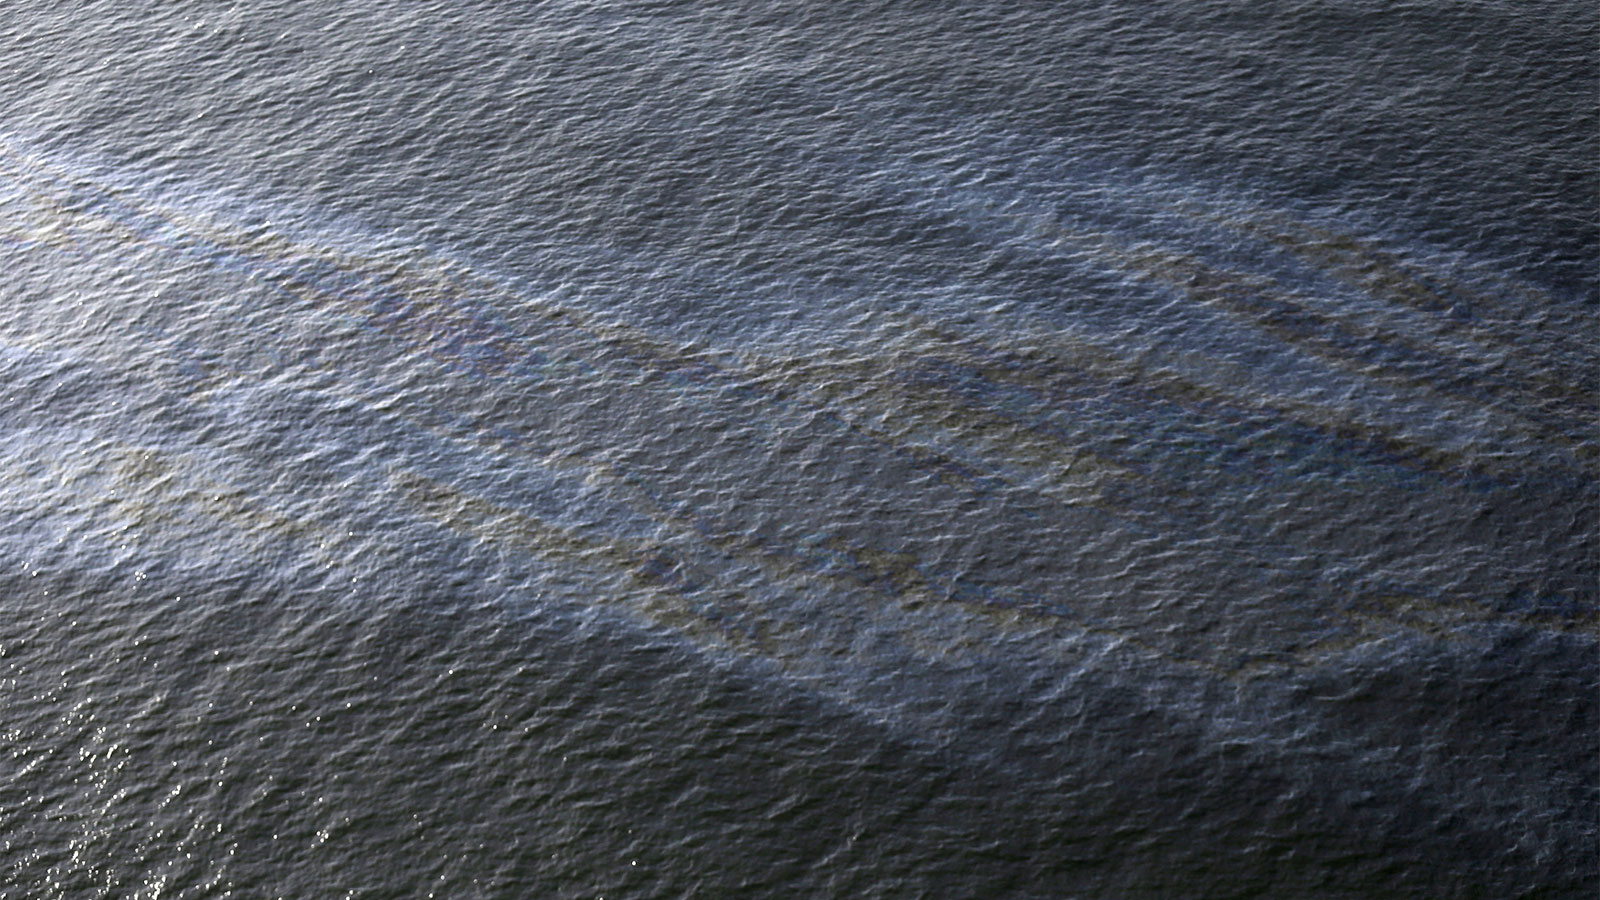 Aerial view of an oil spill